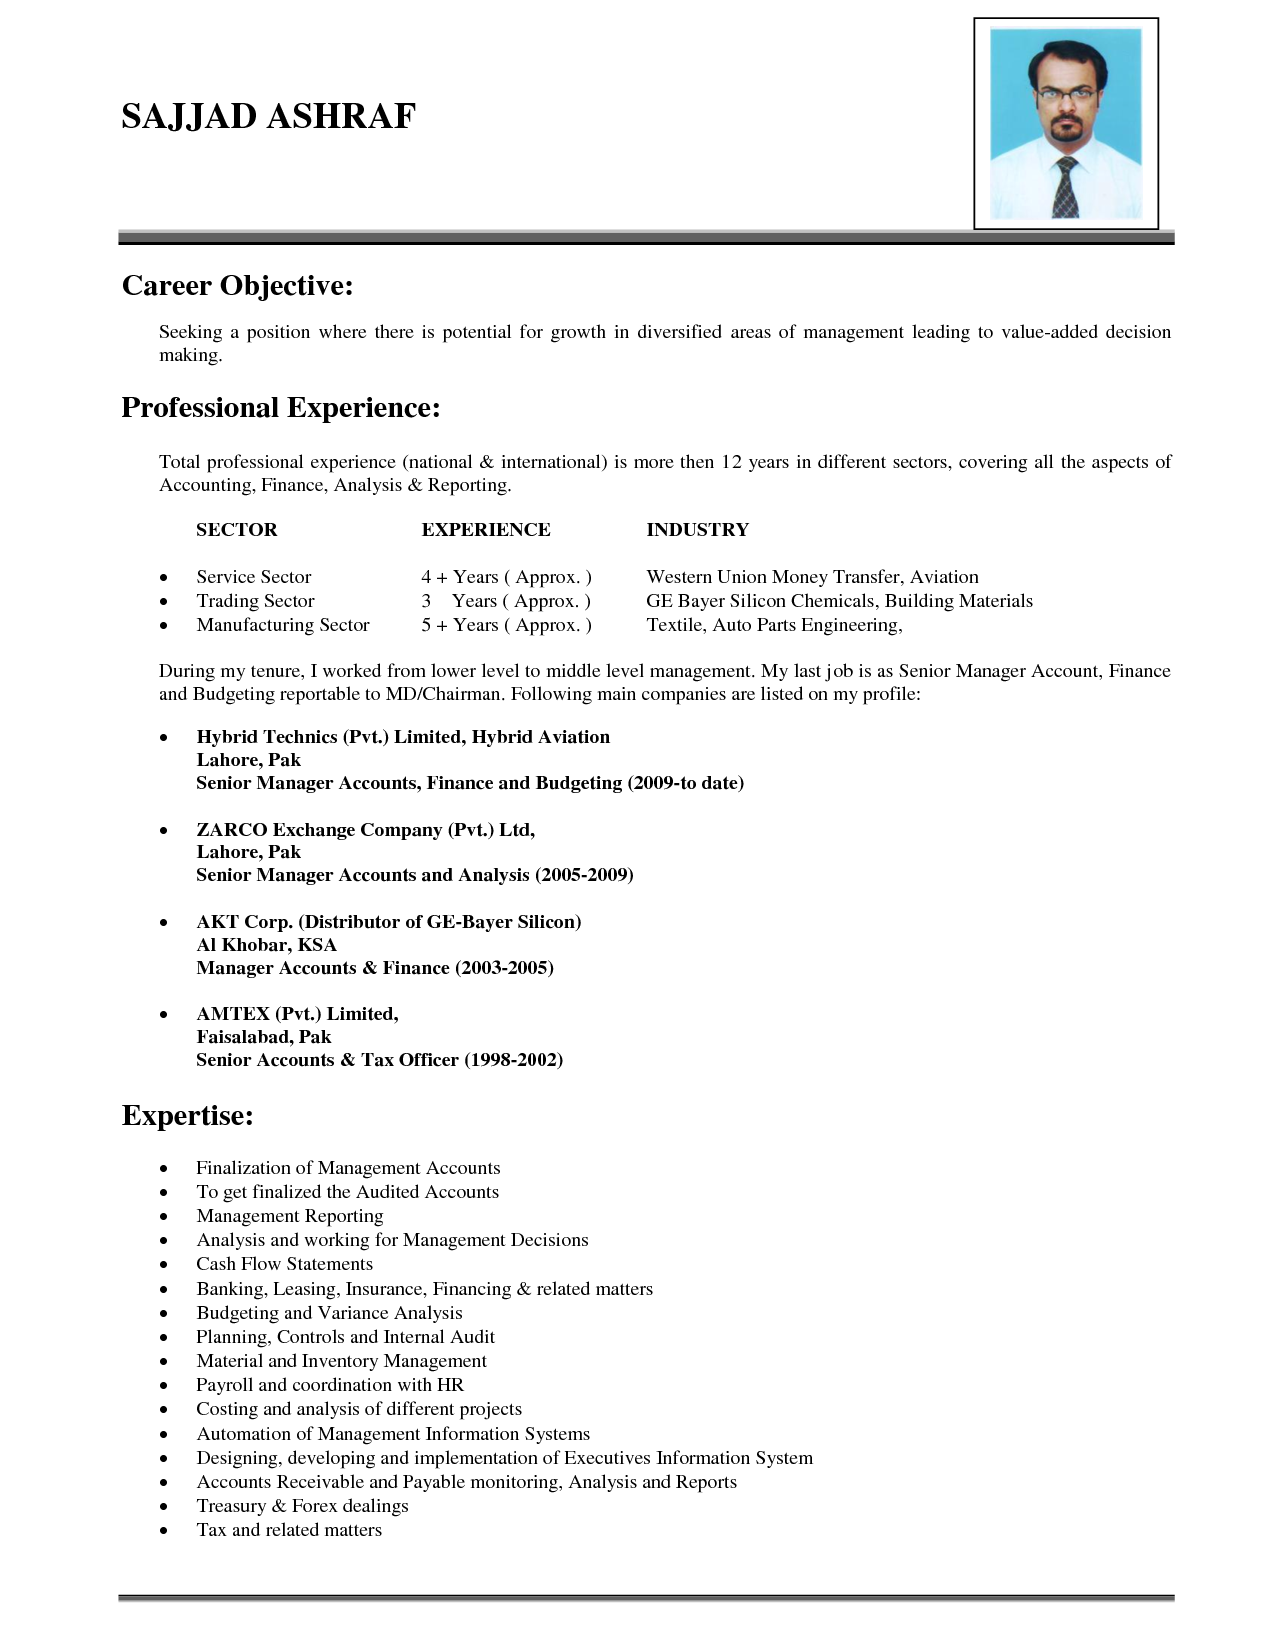 Good Objective Lines for Resumes career objective with full professional experience